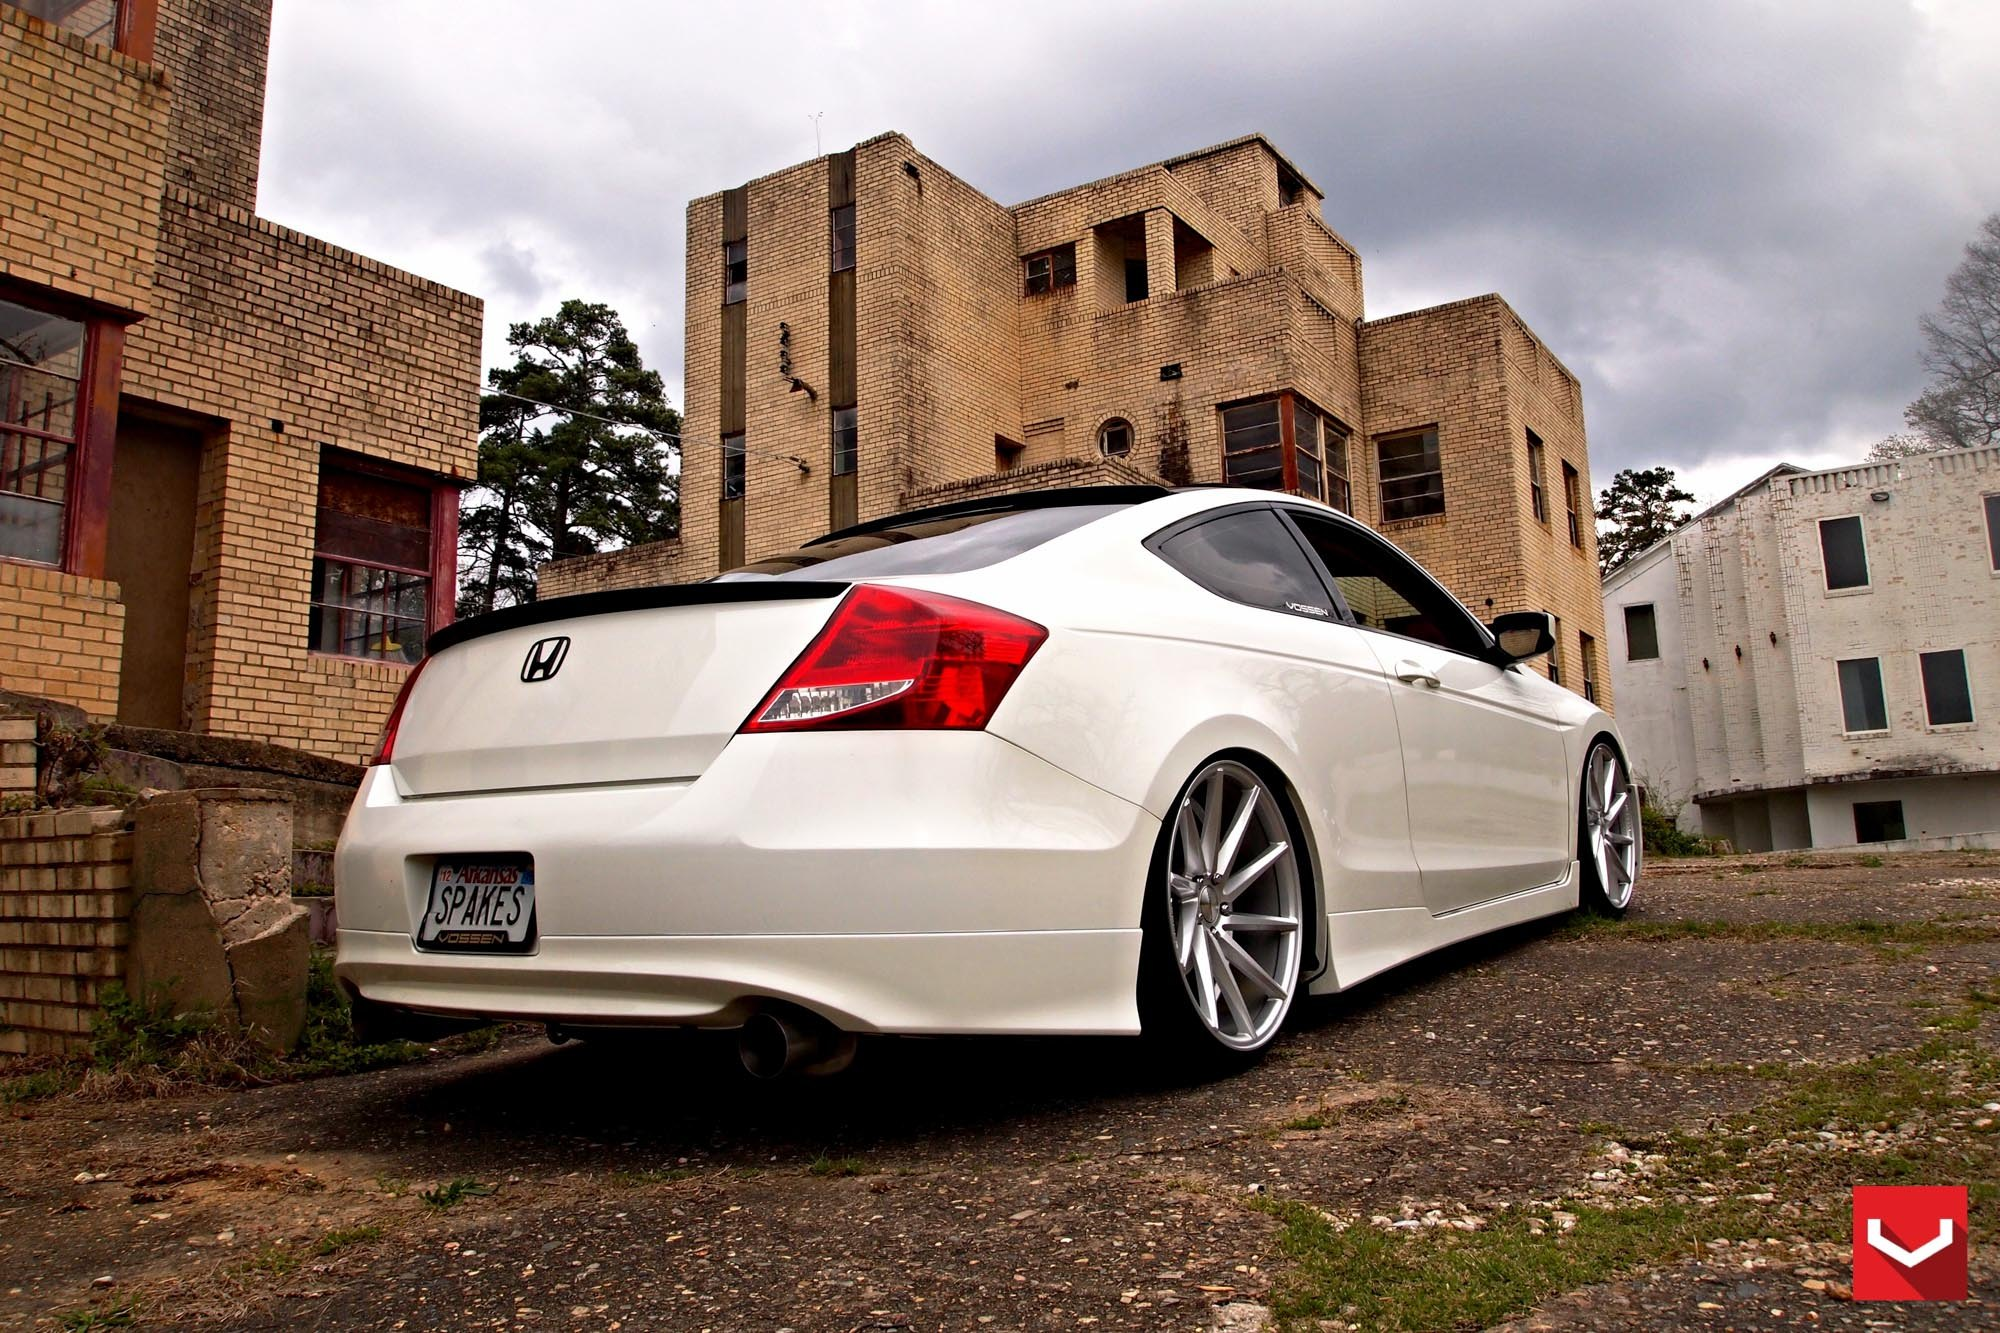 White Honda Accord Spruced Up With Blacked Out Custom